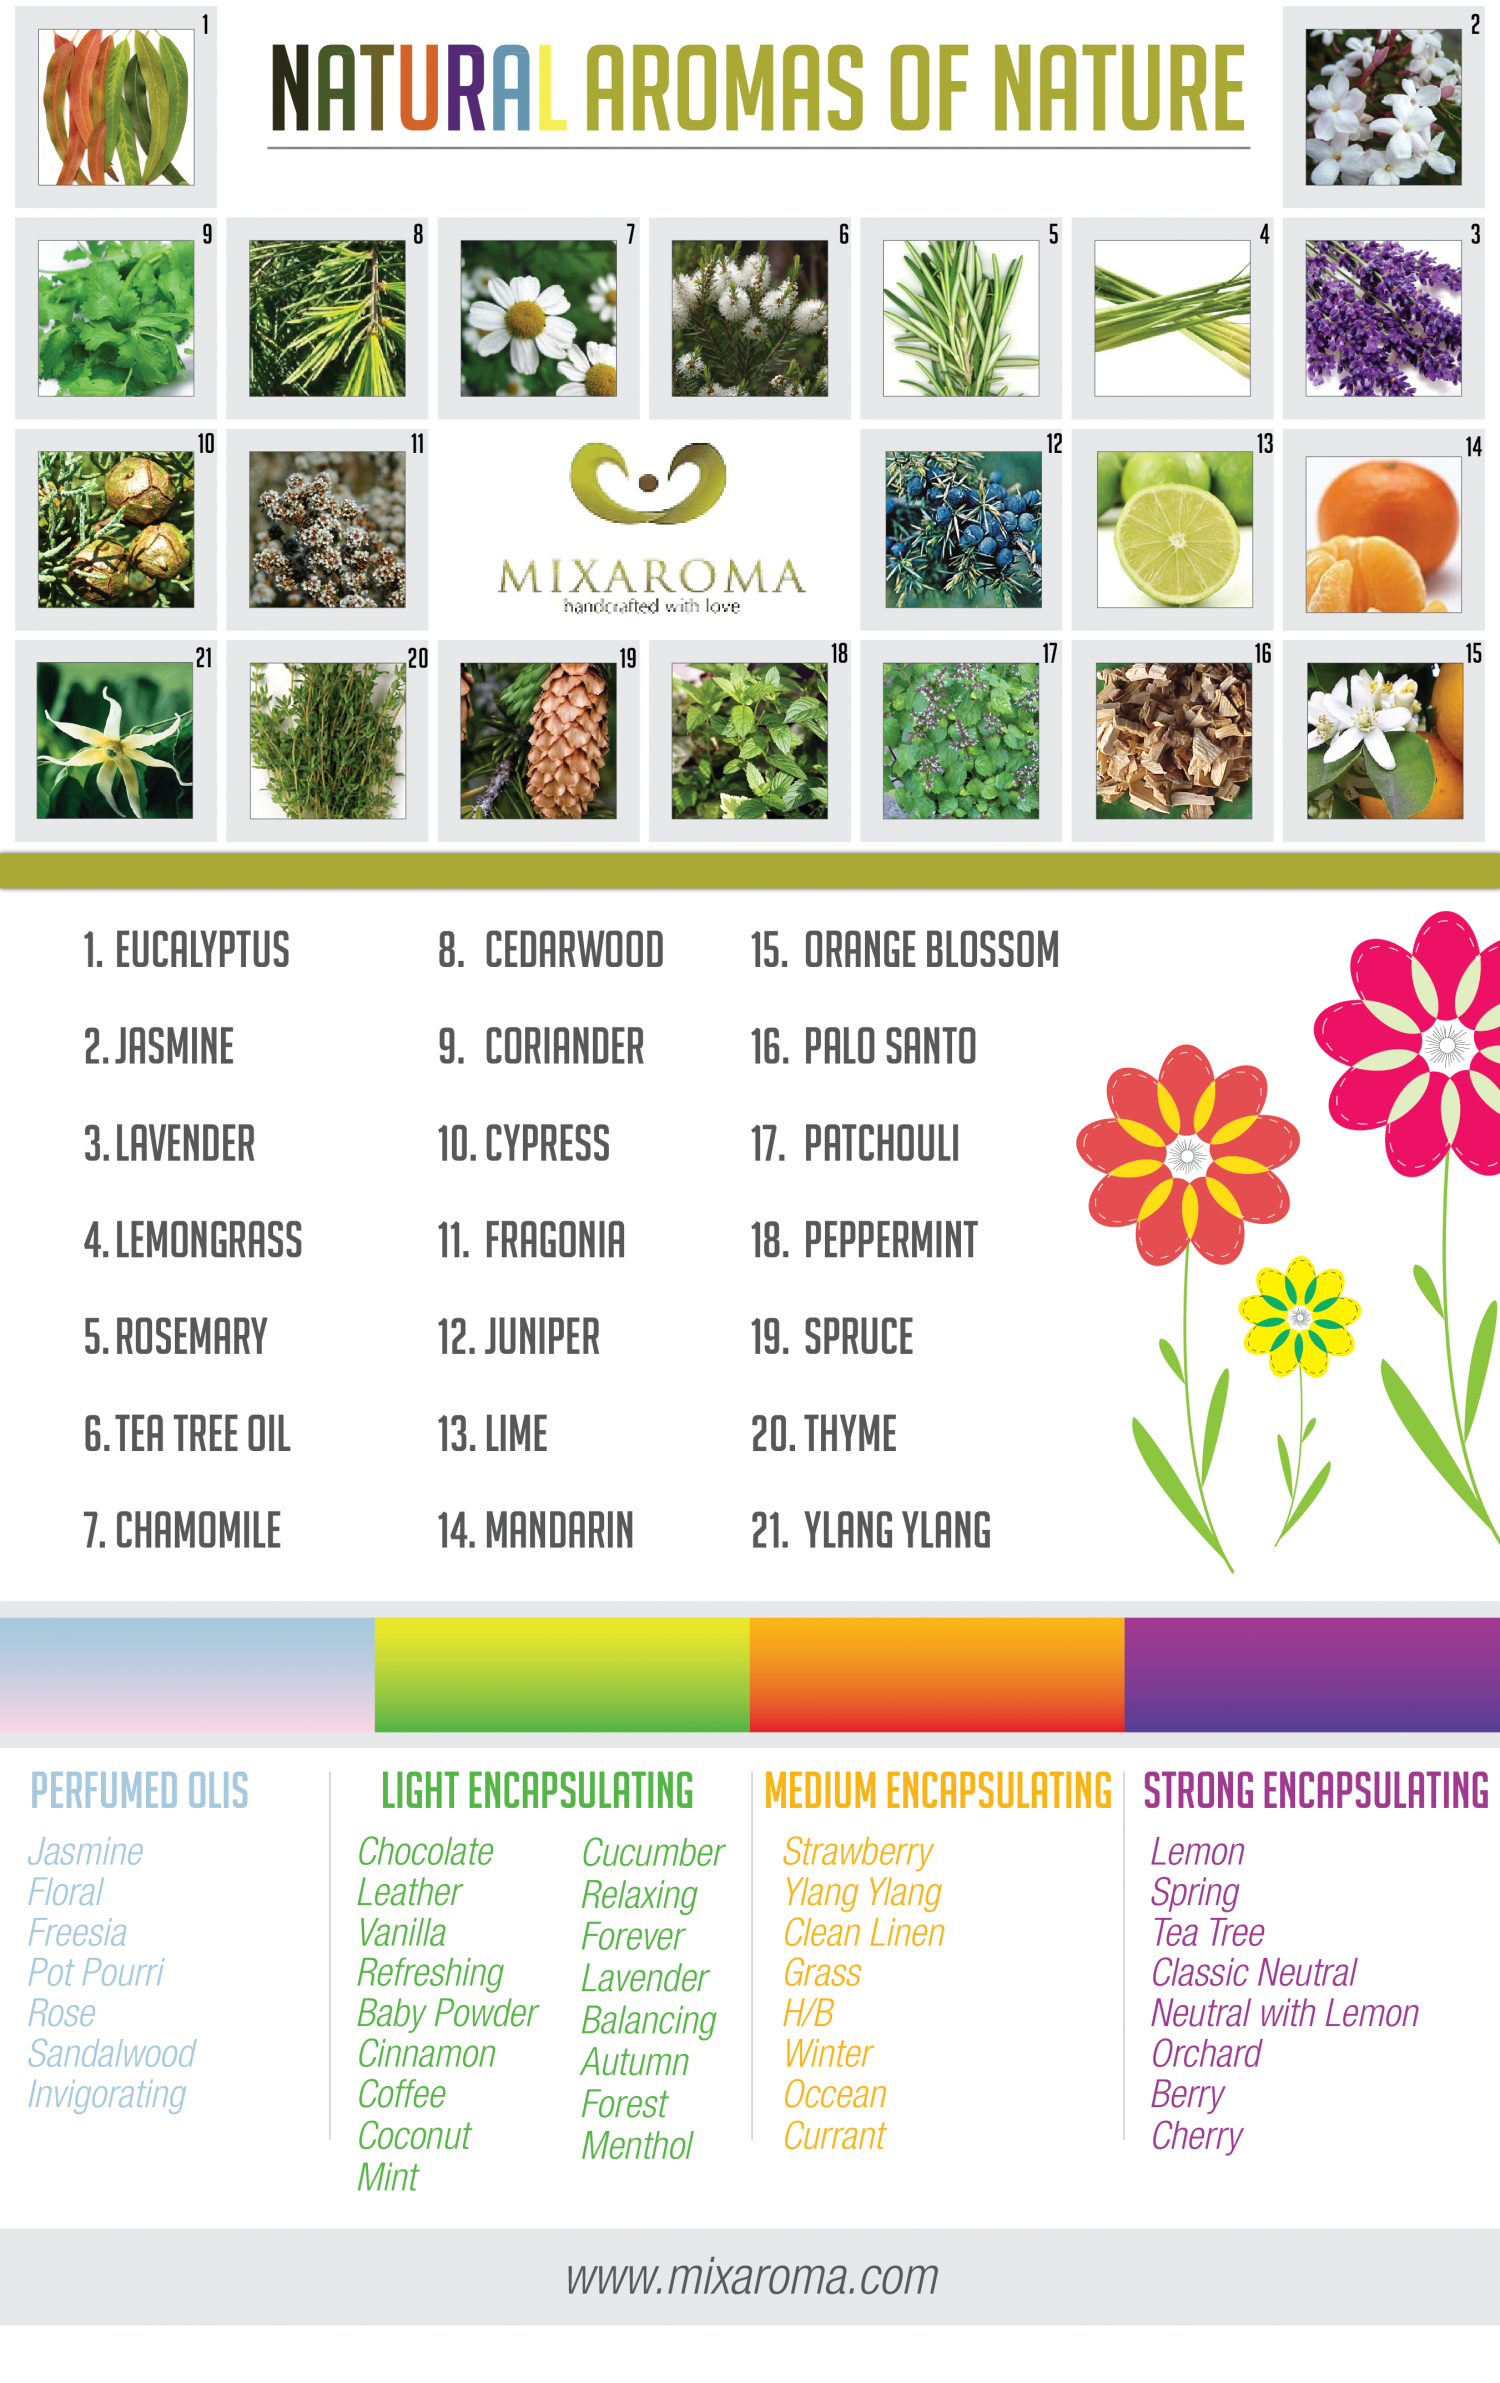 Natural Aromas of Nature Infographic